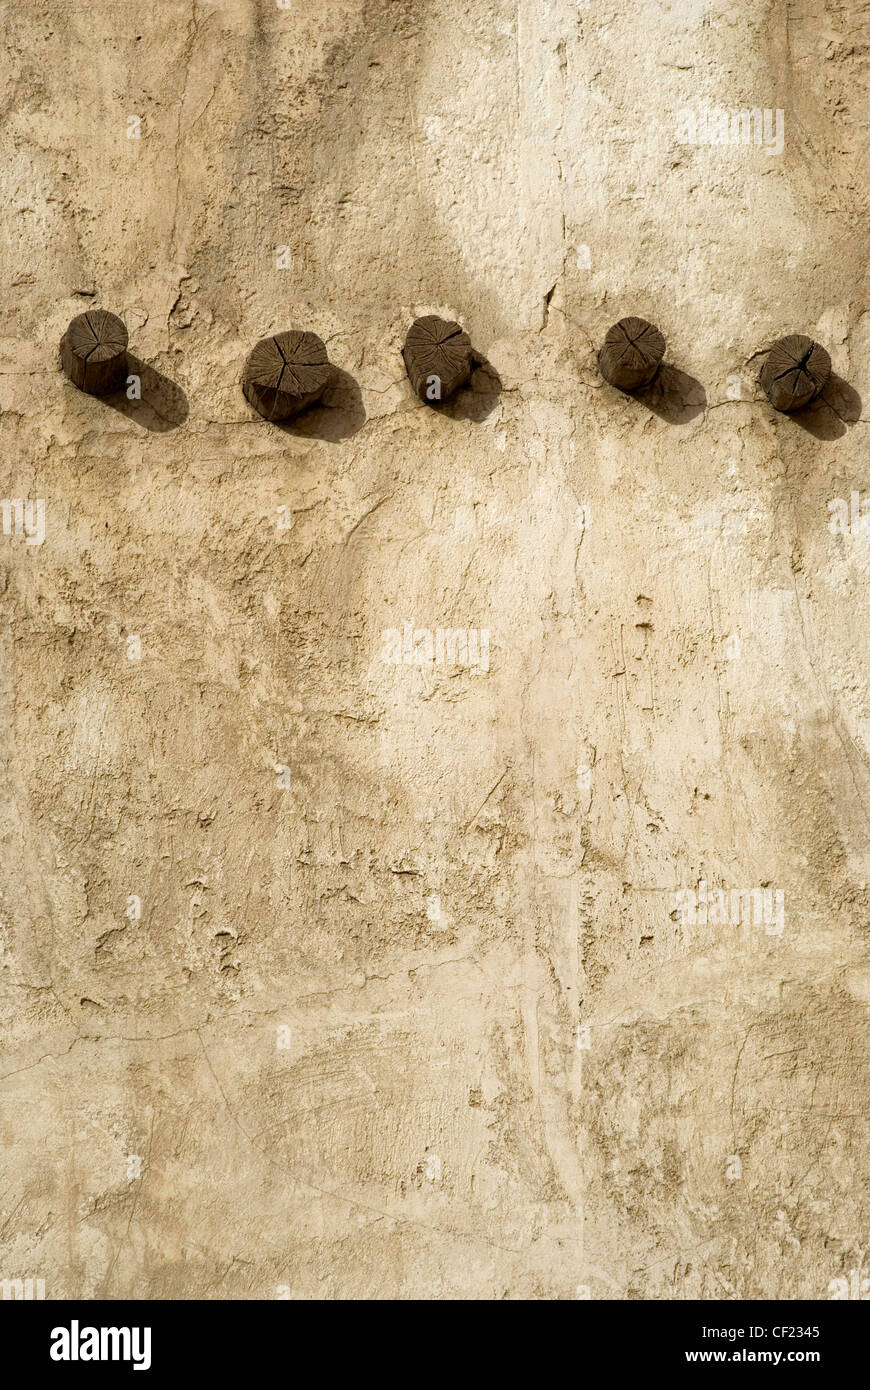 old weathered wall with joists protruding - Stock Image